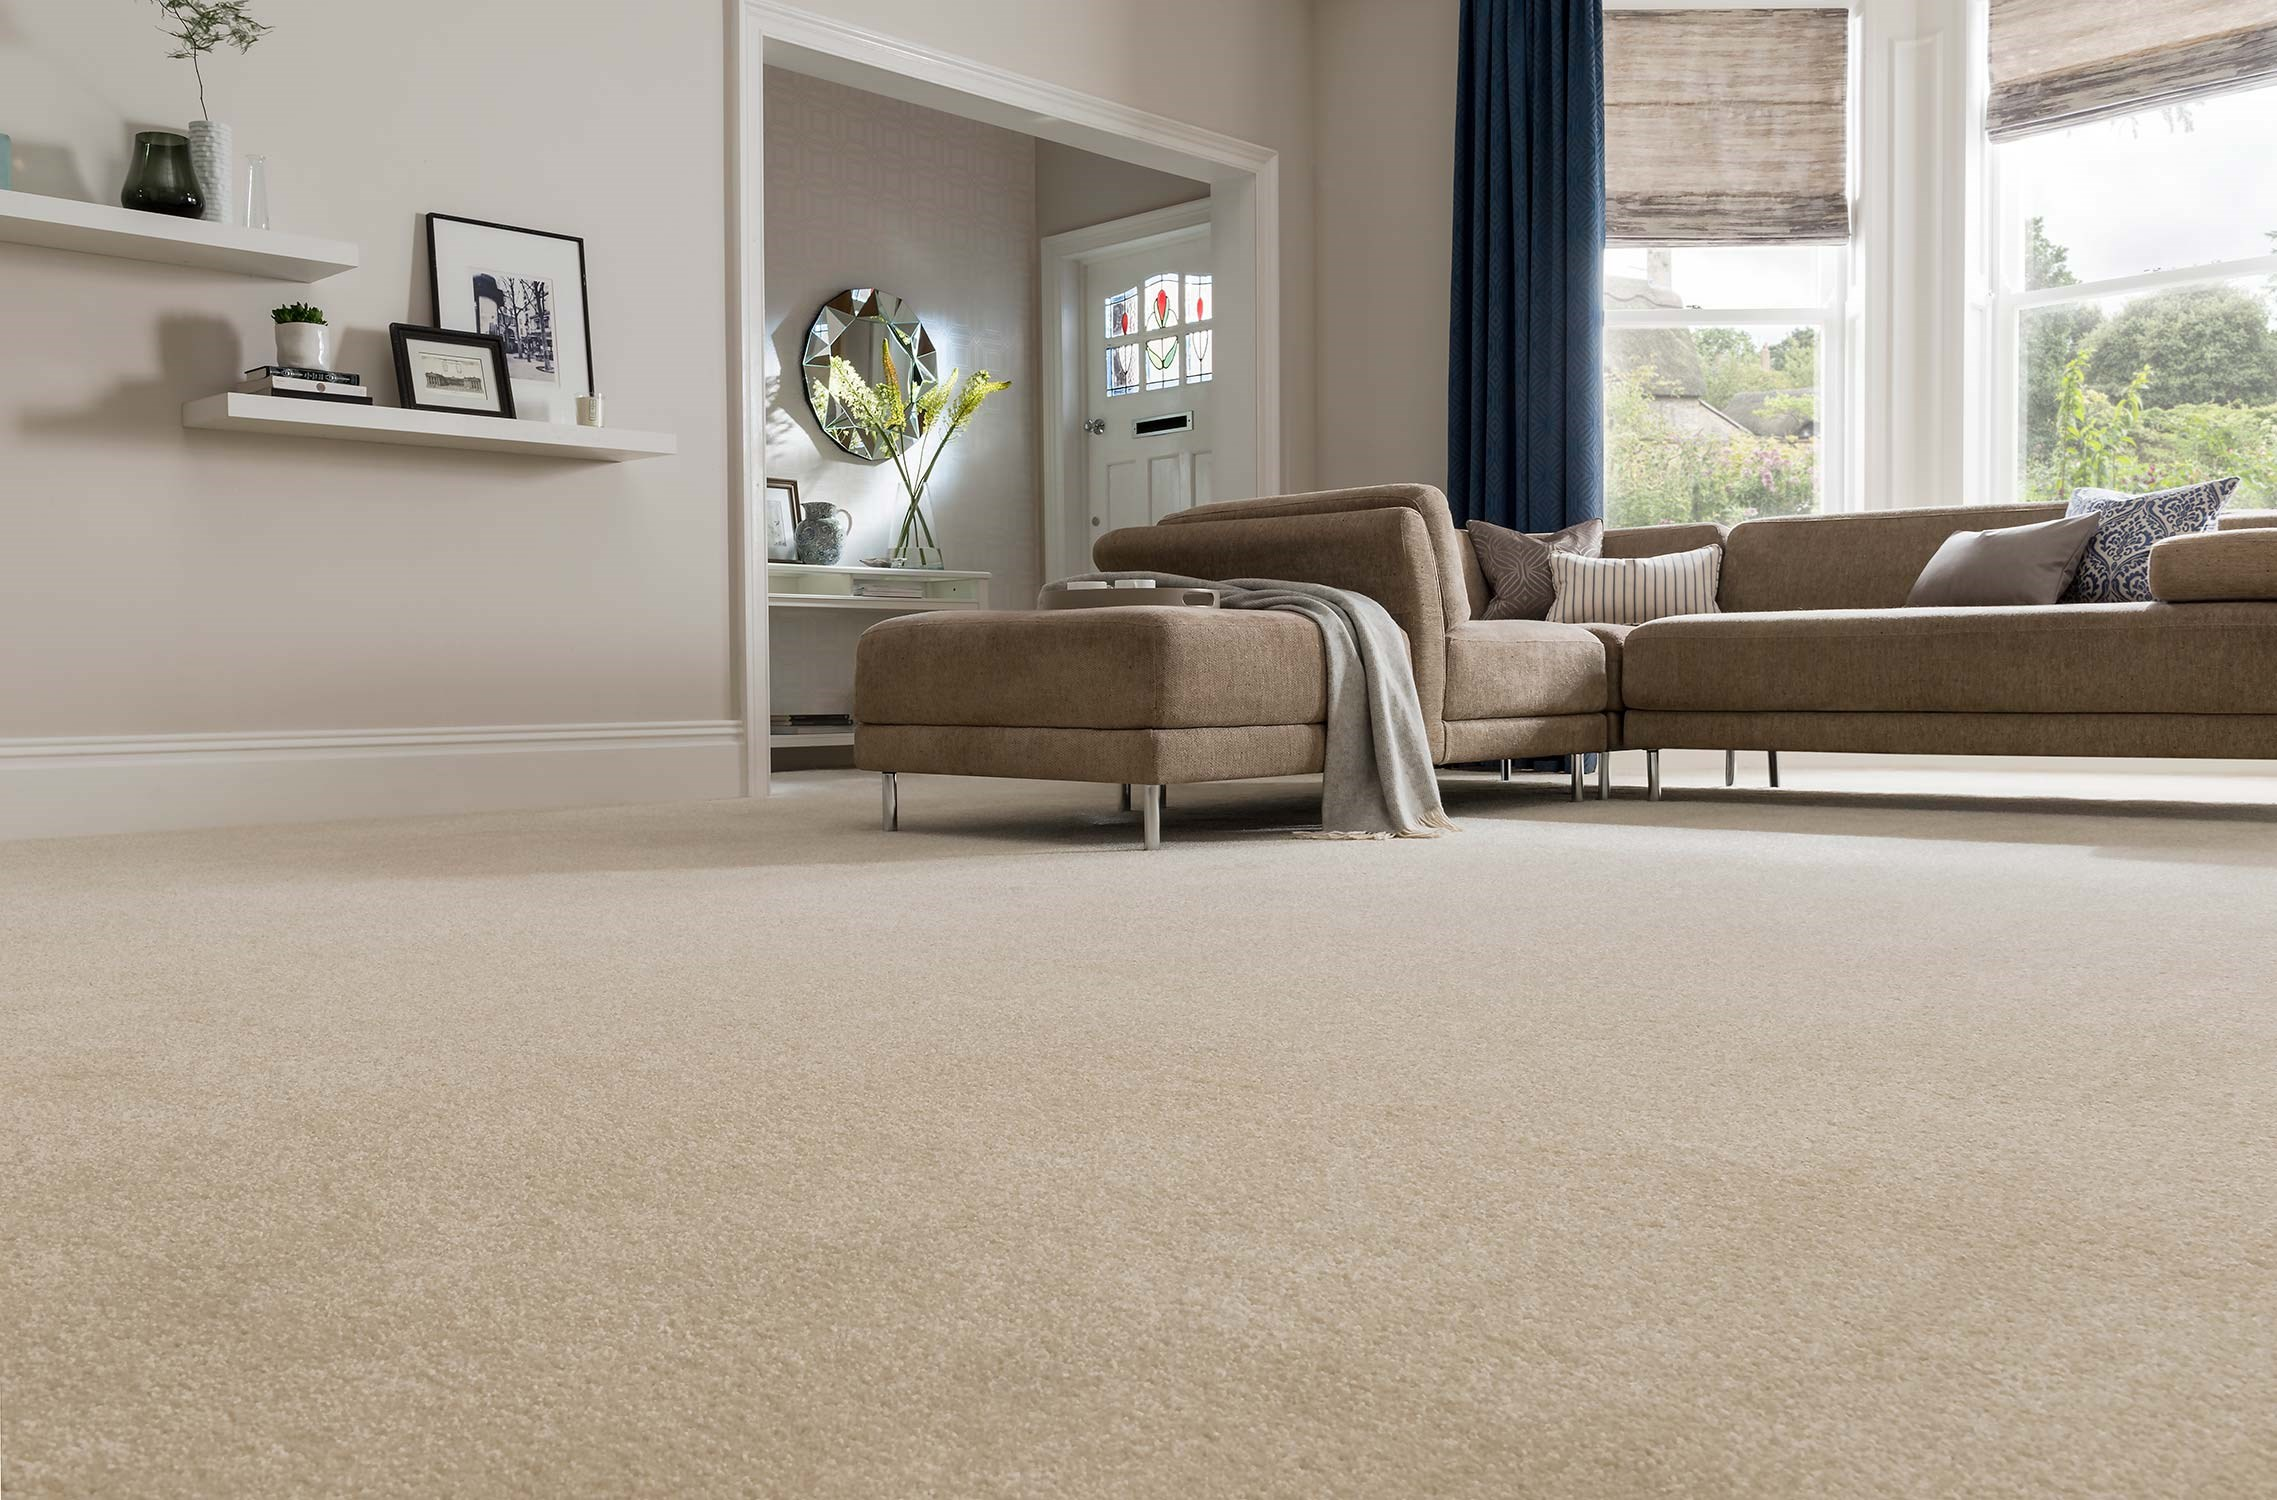 Carpet Utah Great Price Quality Great Carpet Starts Around Yd